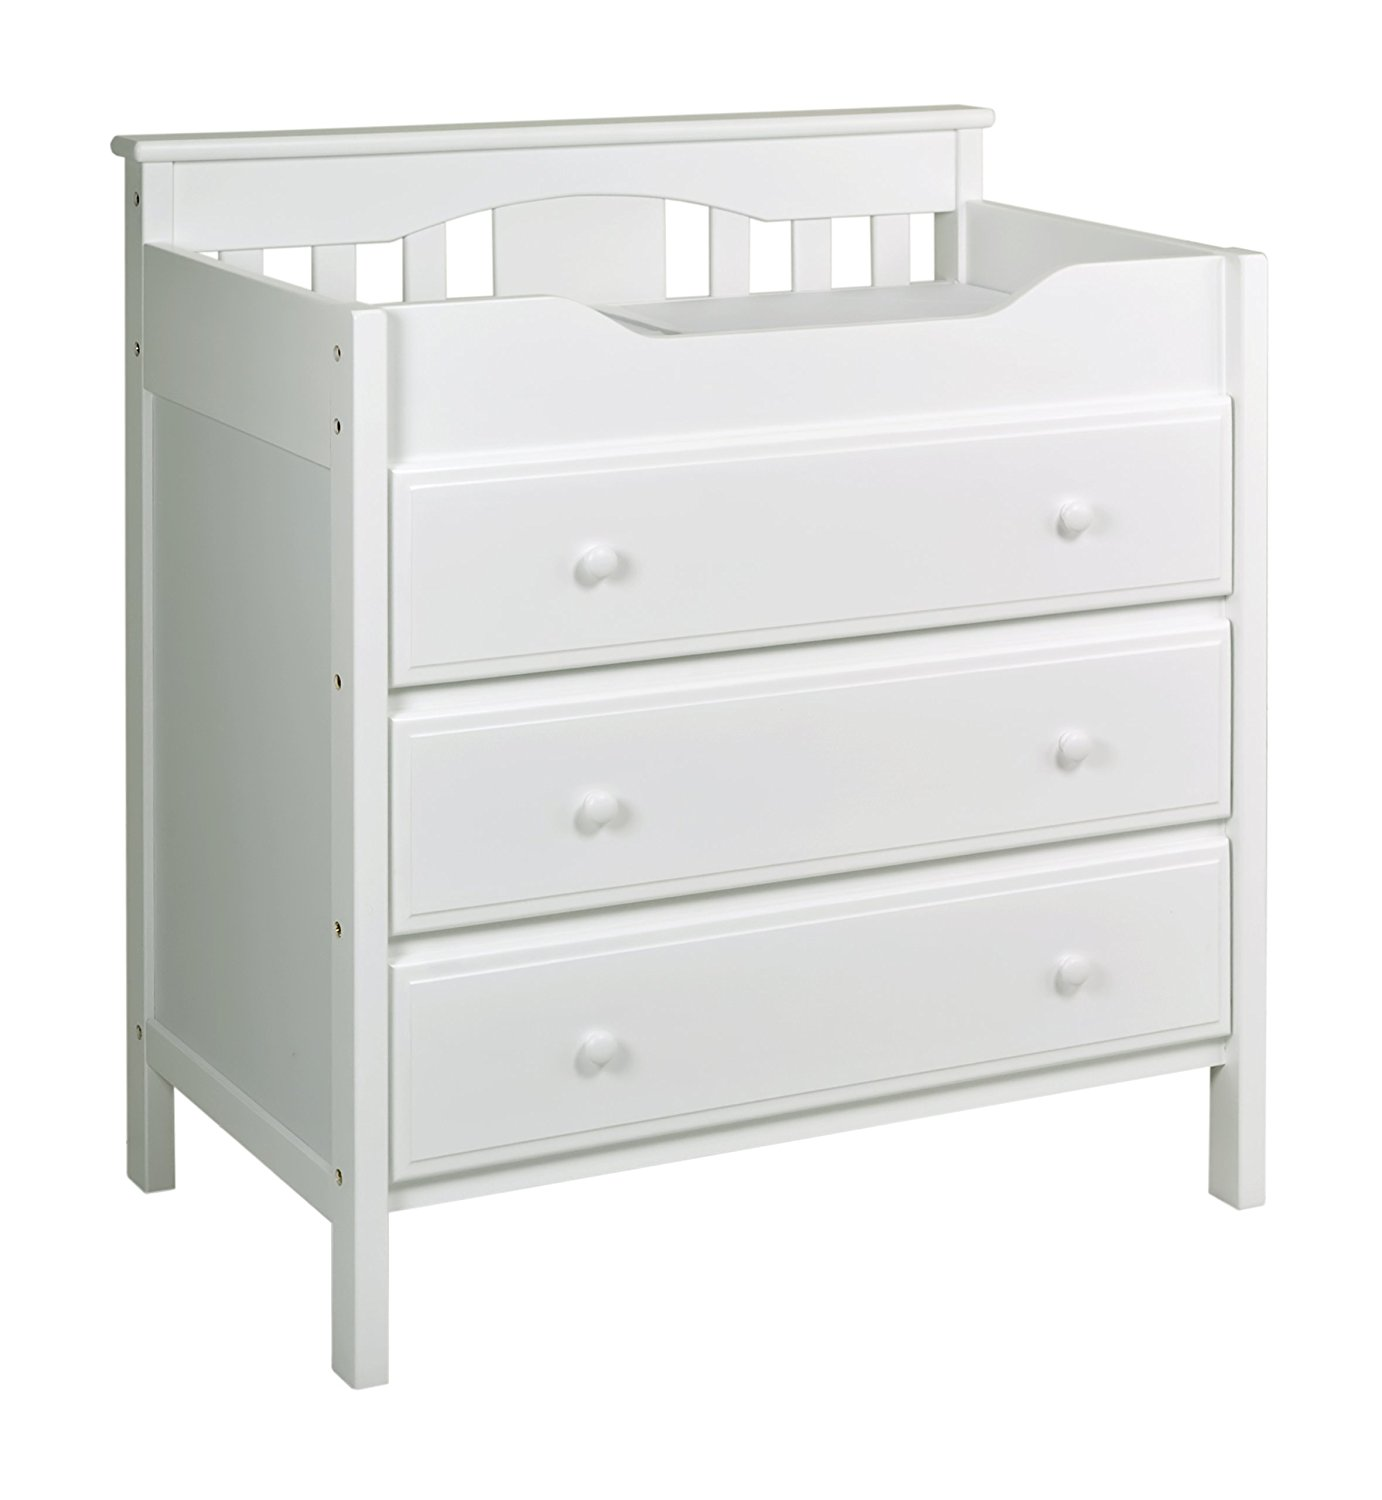 Changing Table Dresser Topper | Changing Table Dresser | Dresser with Changing Table